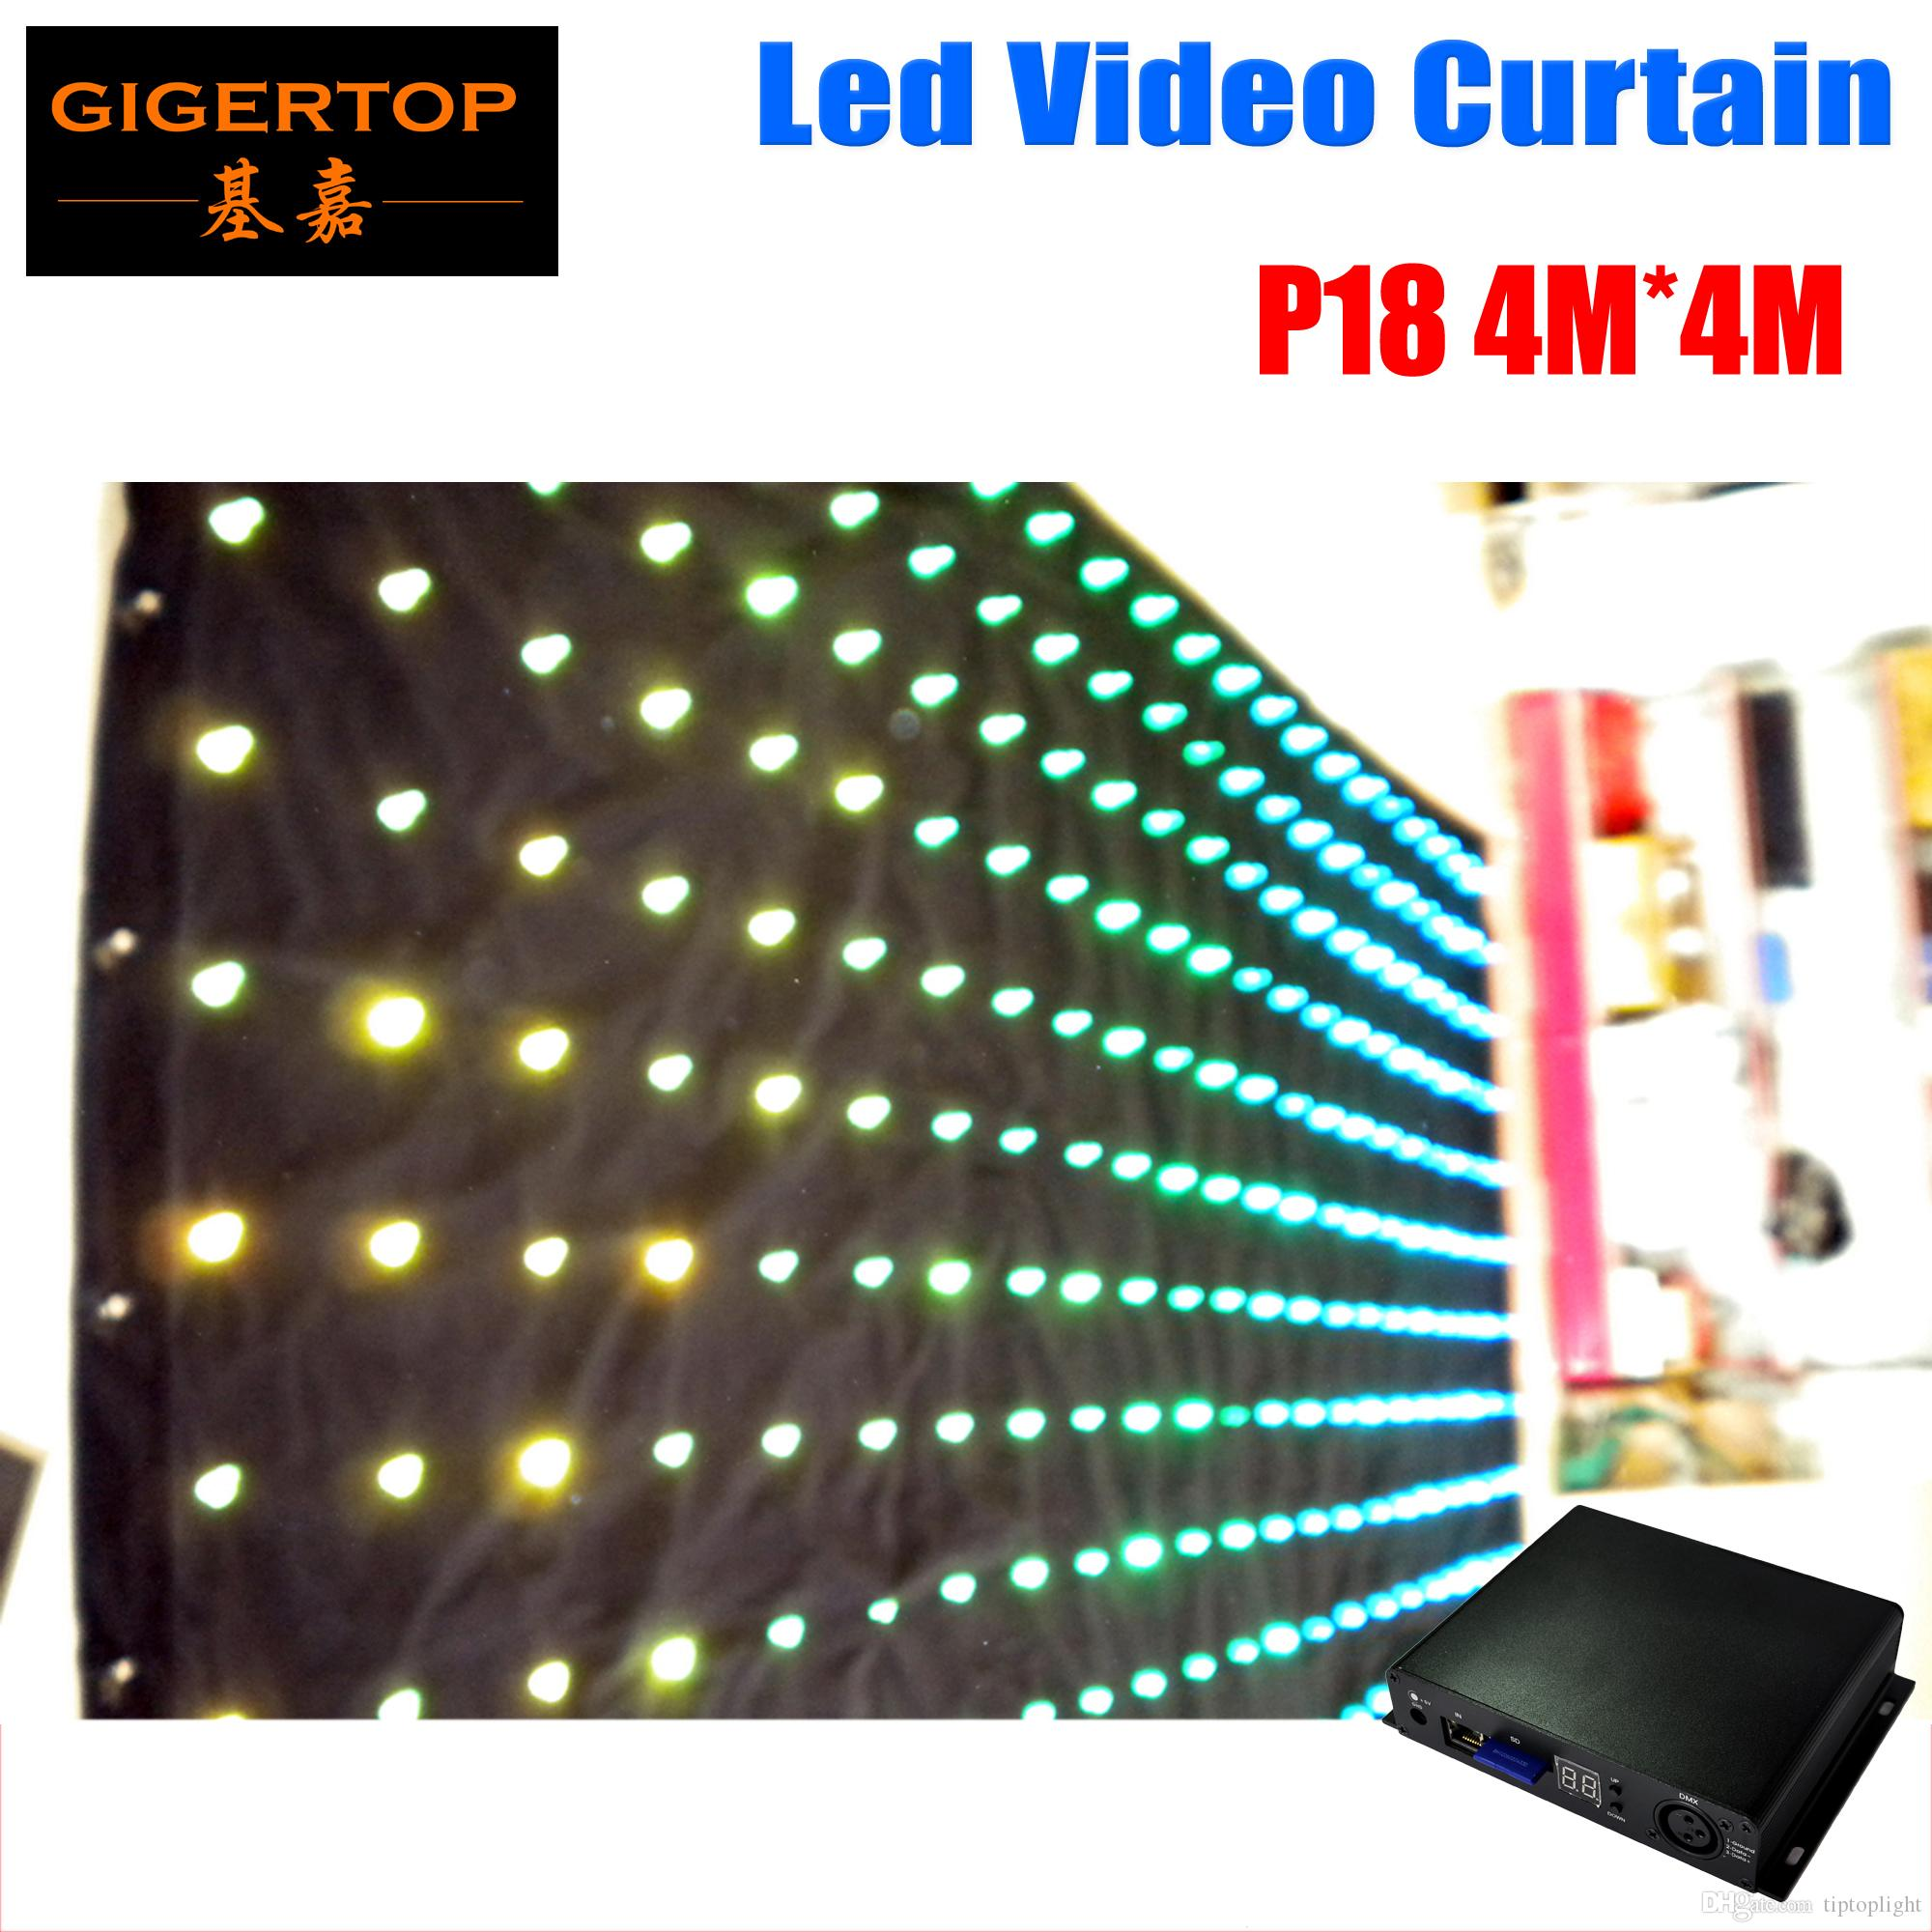 High Quality P18 4M*4M Tricolor Led Graphic Curtain,RGB Color Mixing LED Video Curtain For DJ Wedding Backdrop On/Off Line Mode